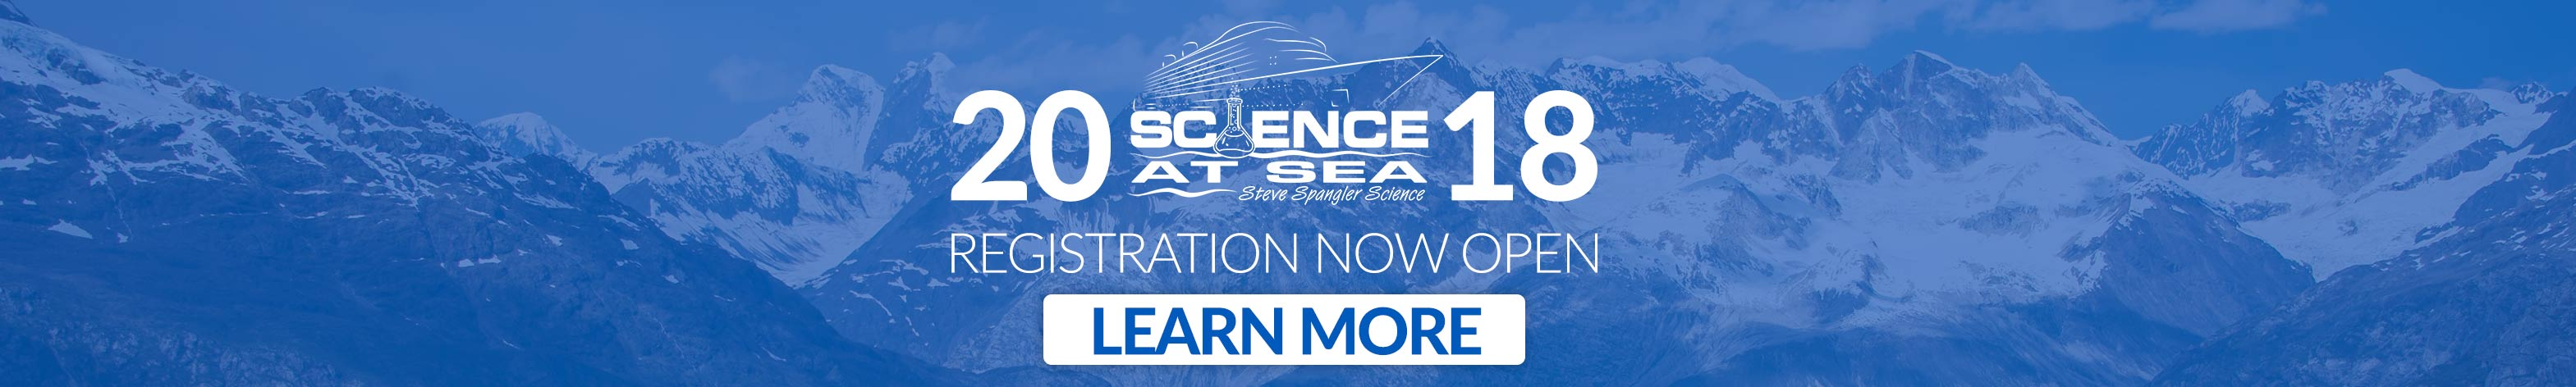 Science at Sea 2018 Registration now open banner